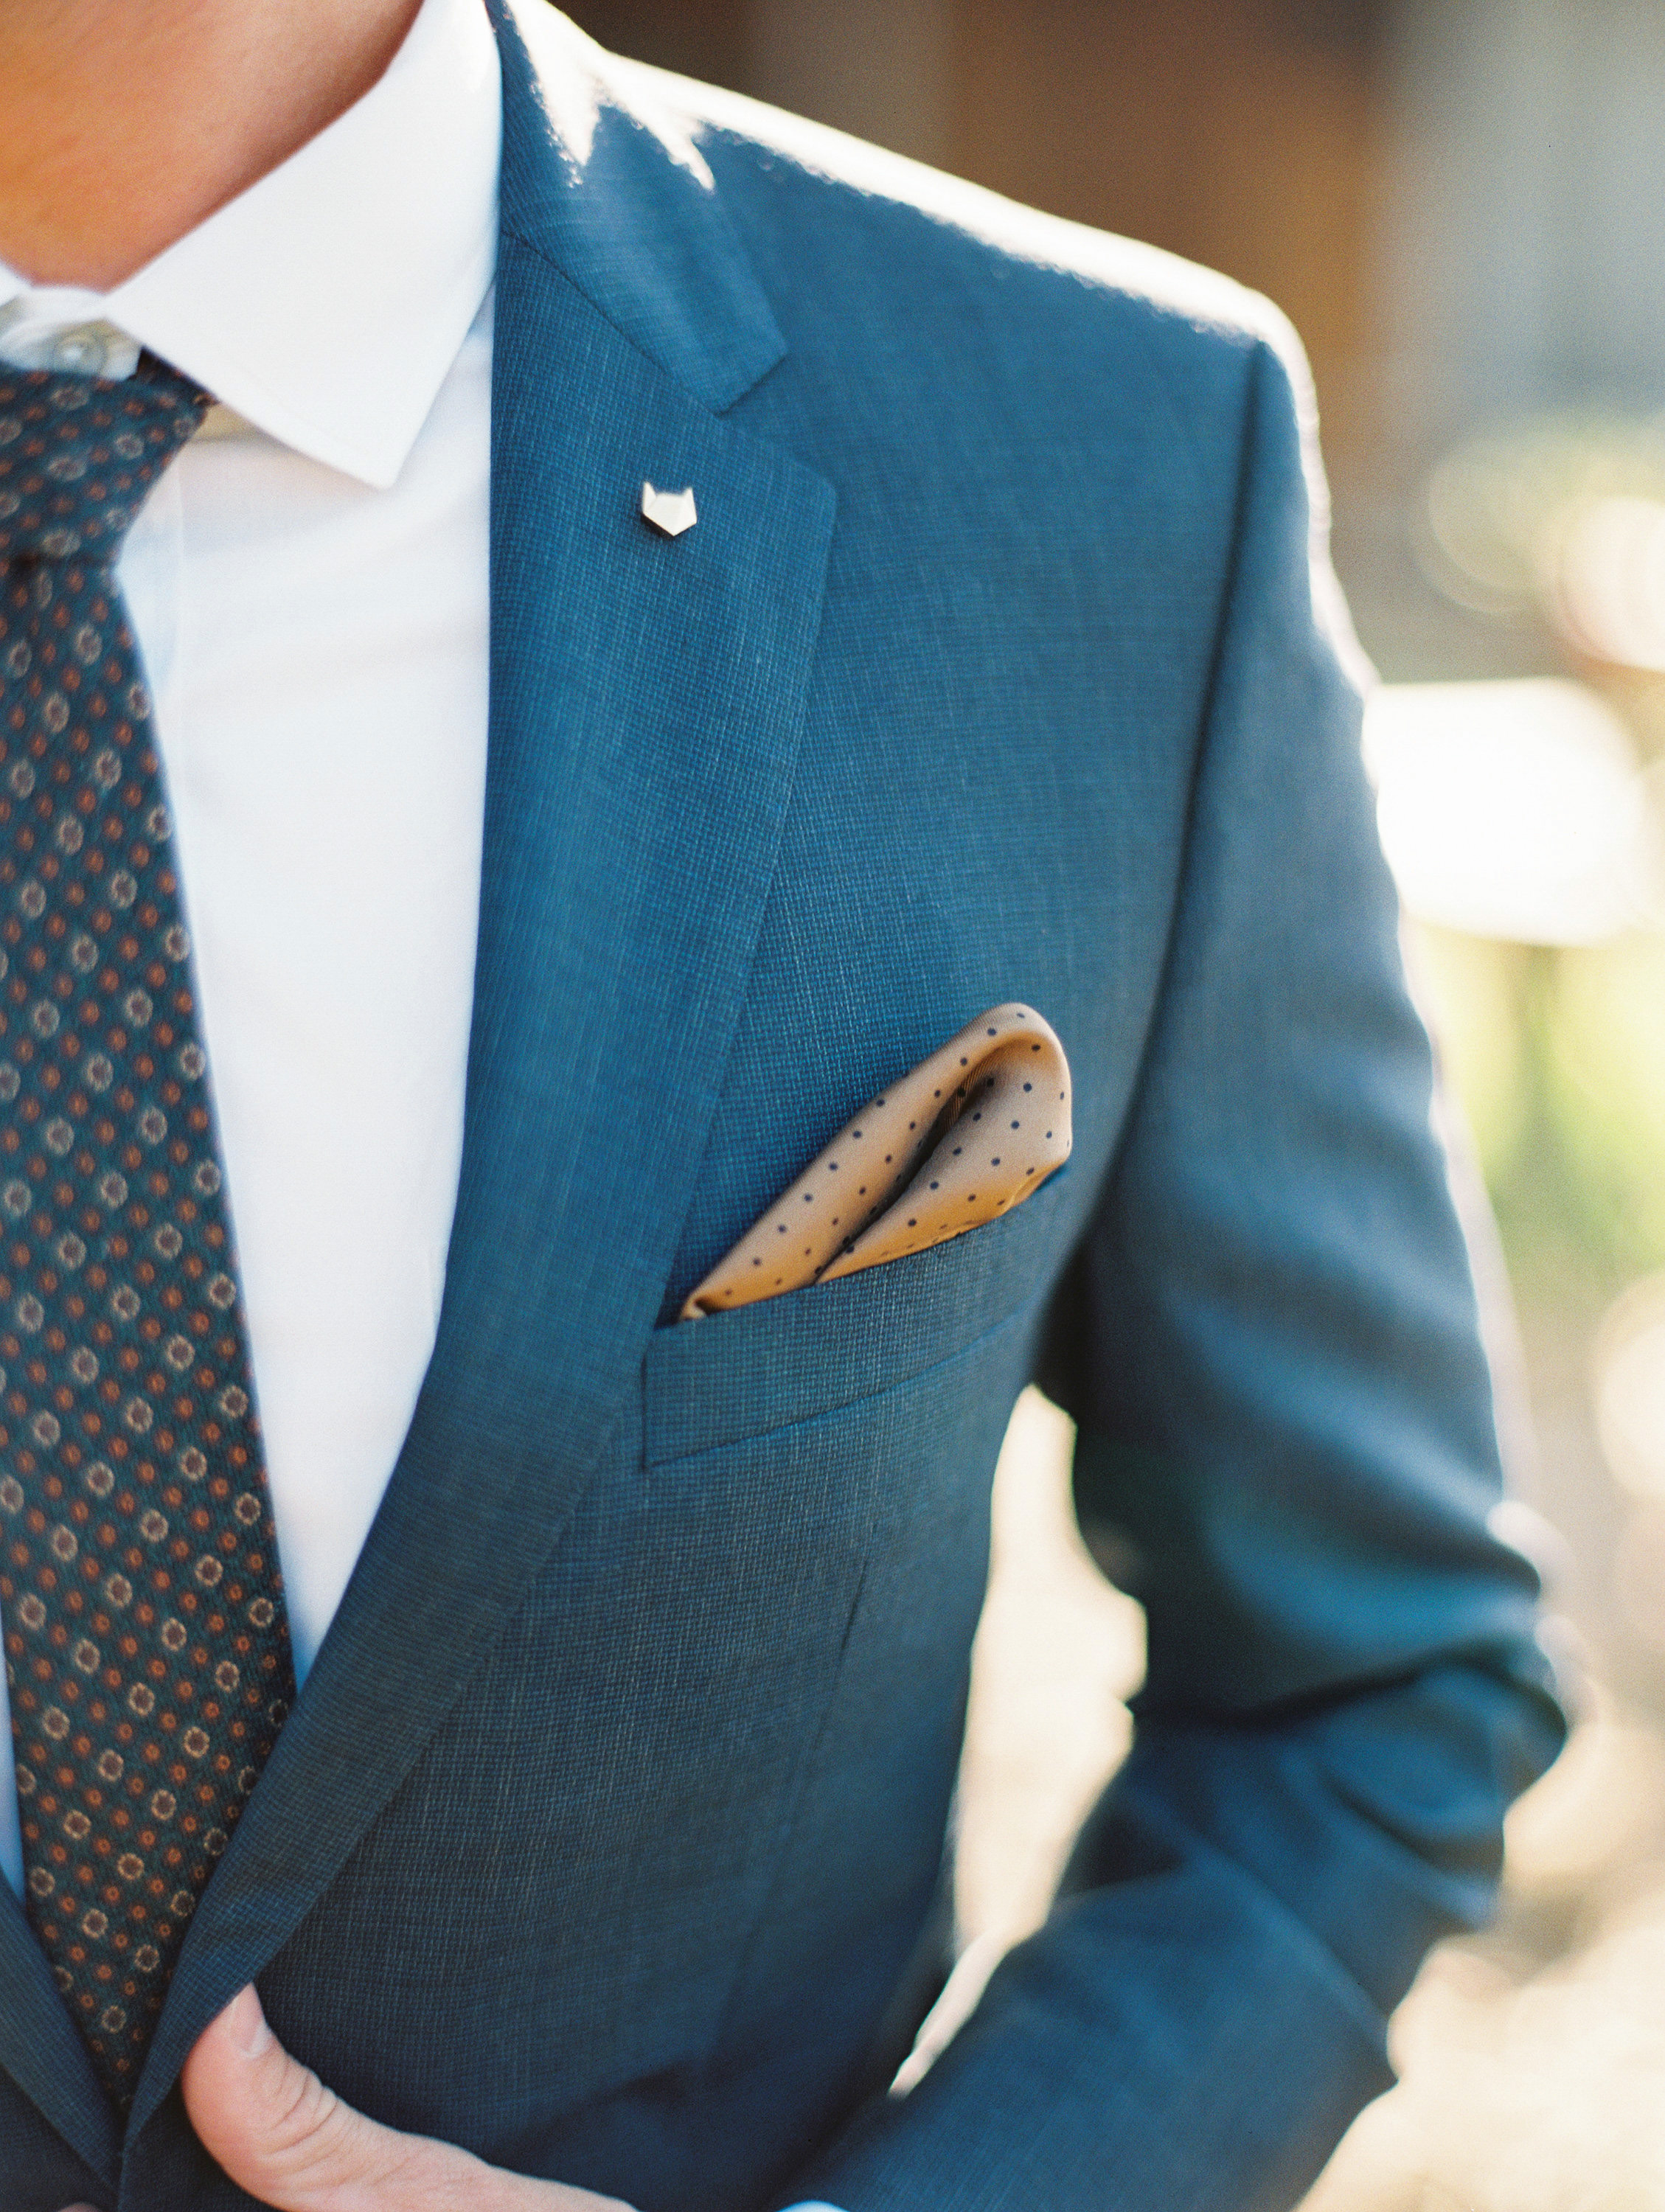 rob franco wedding pin pocket square